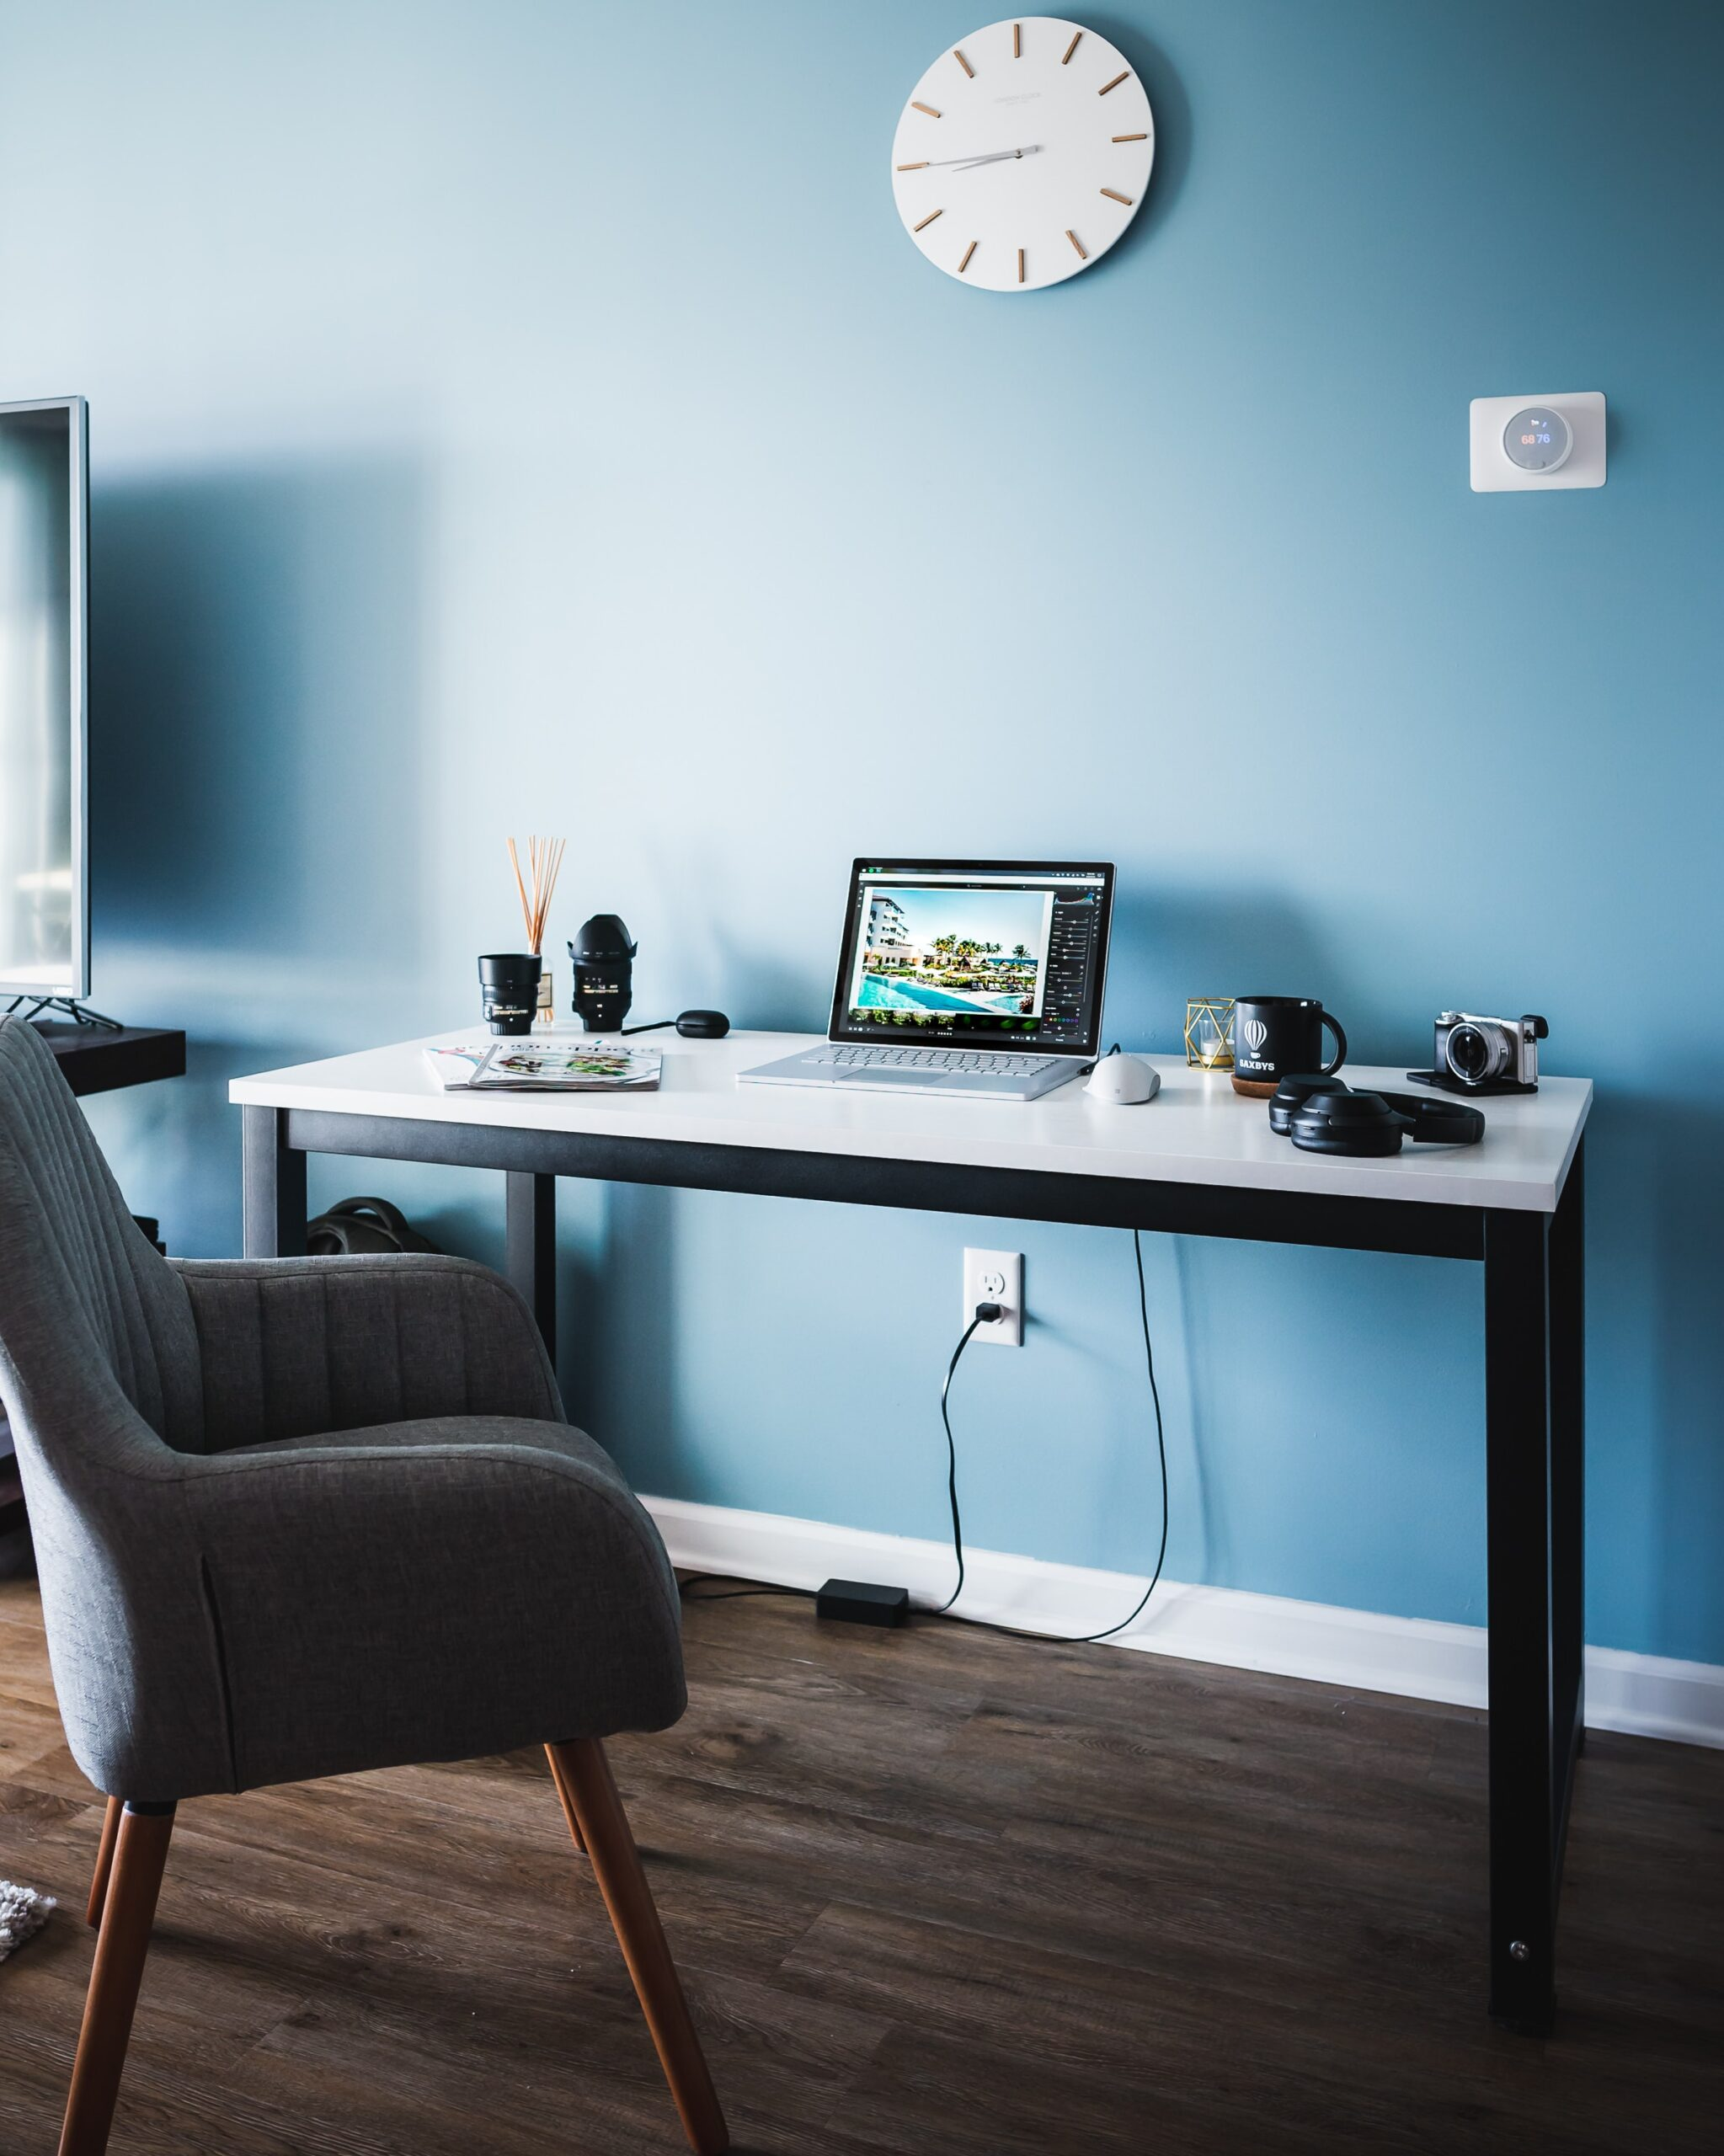 Make Working From Home Easy With These 3 Tips